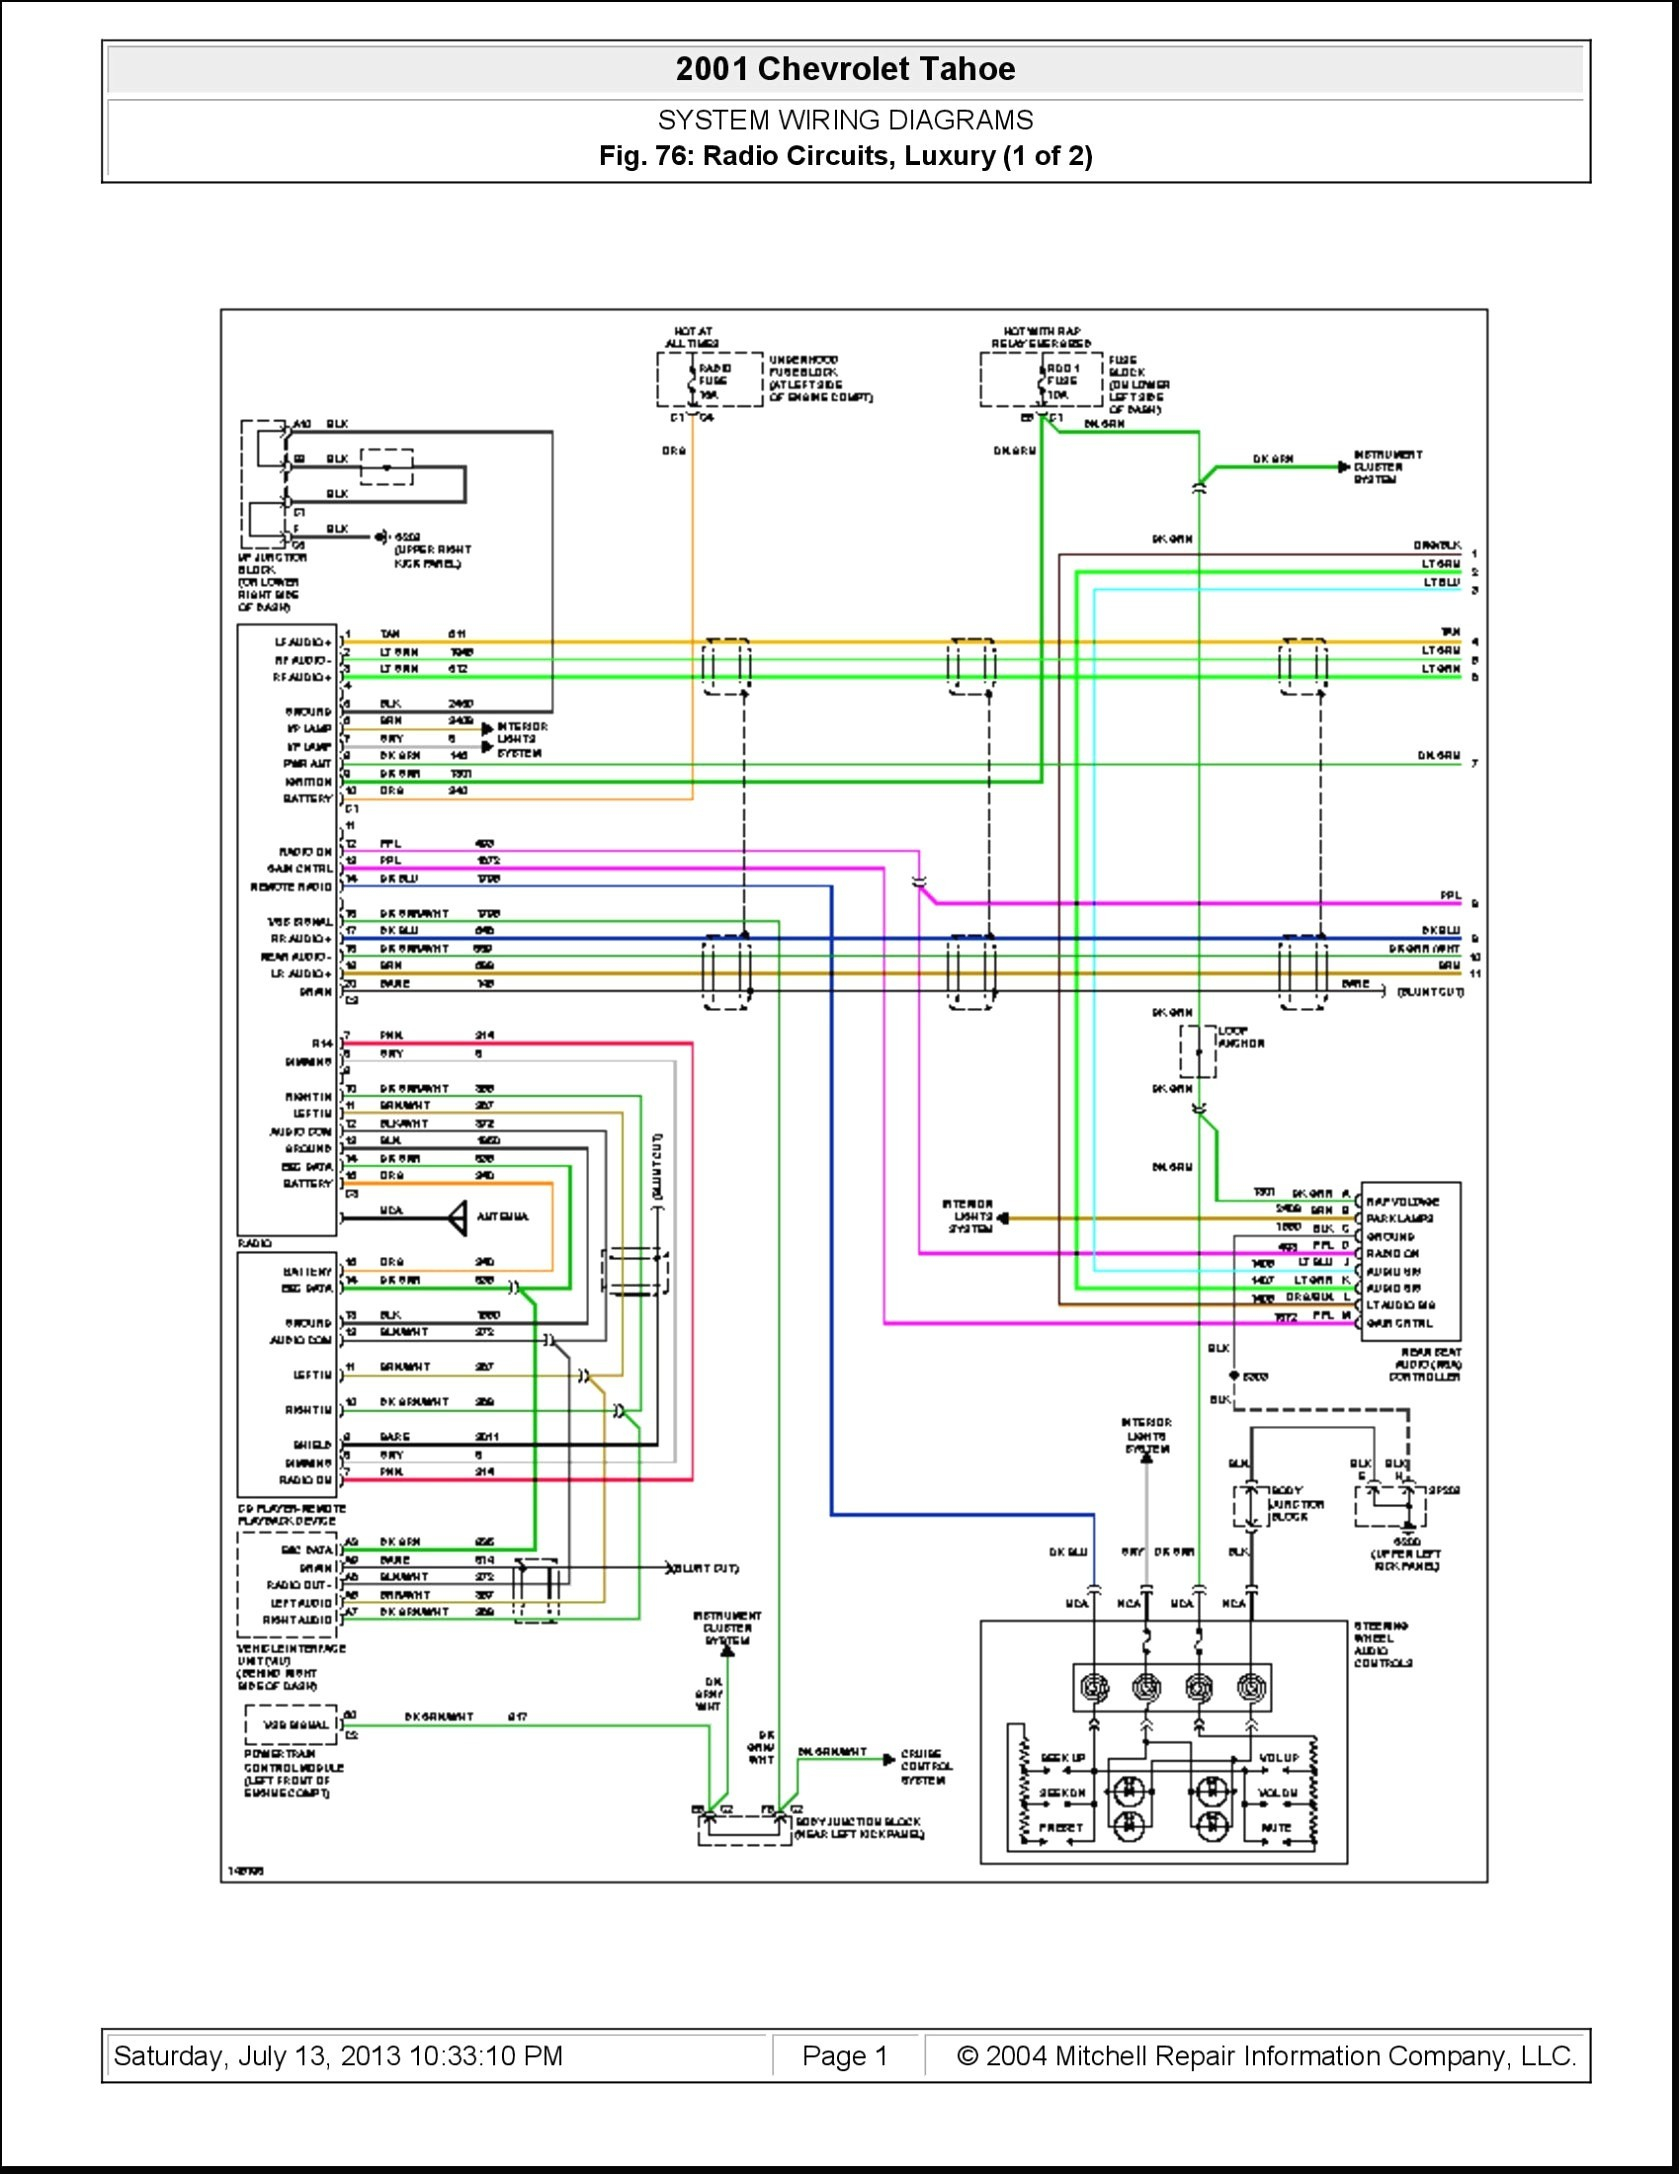 2002 chevy tahoe radio wiring diagram sample wiring. Black Bedroom Furniture Sets. Home Design Ideas